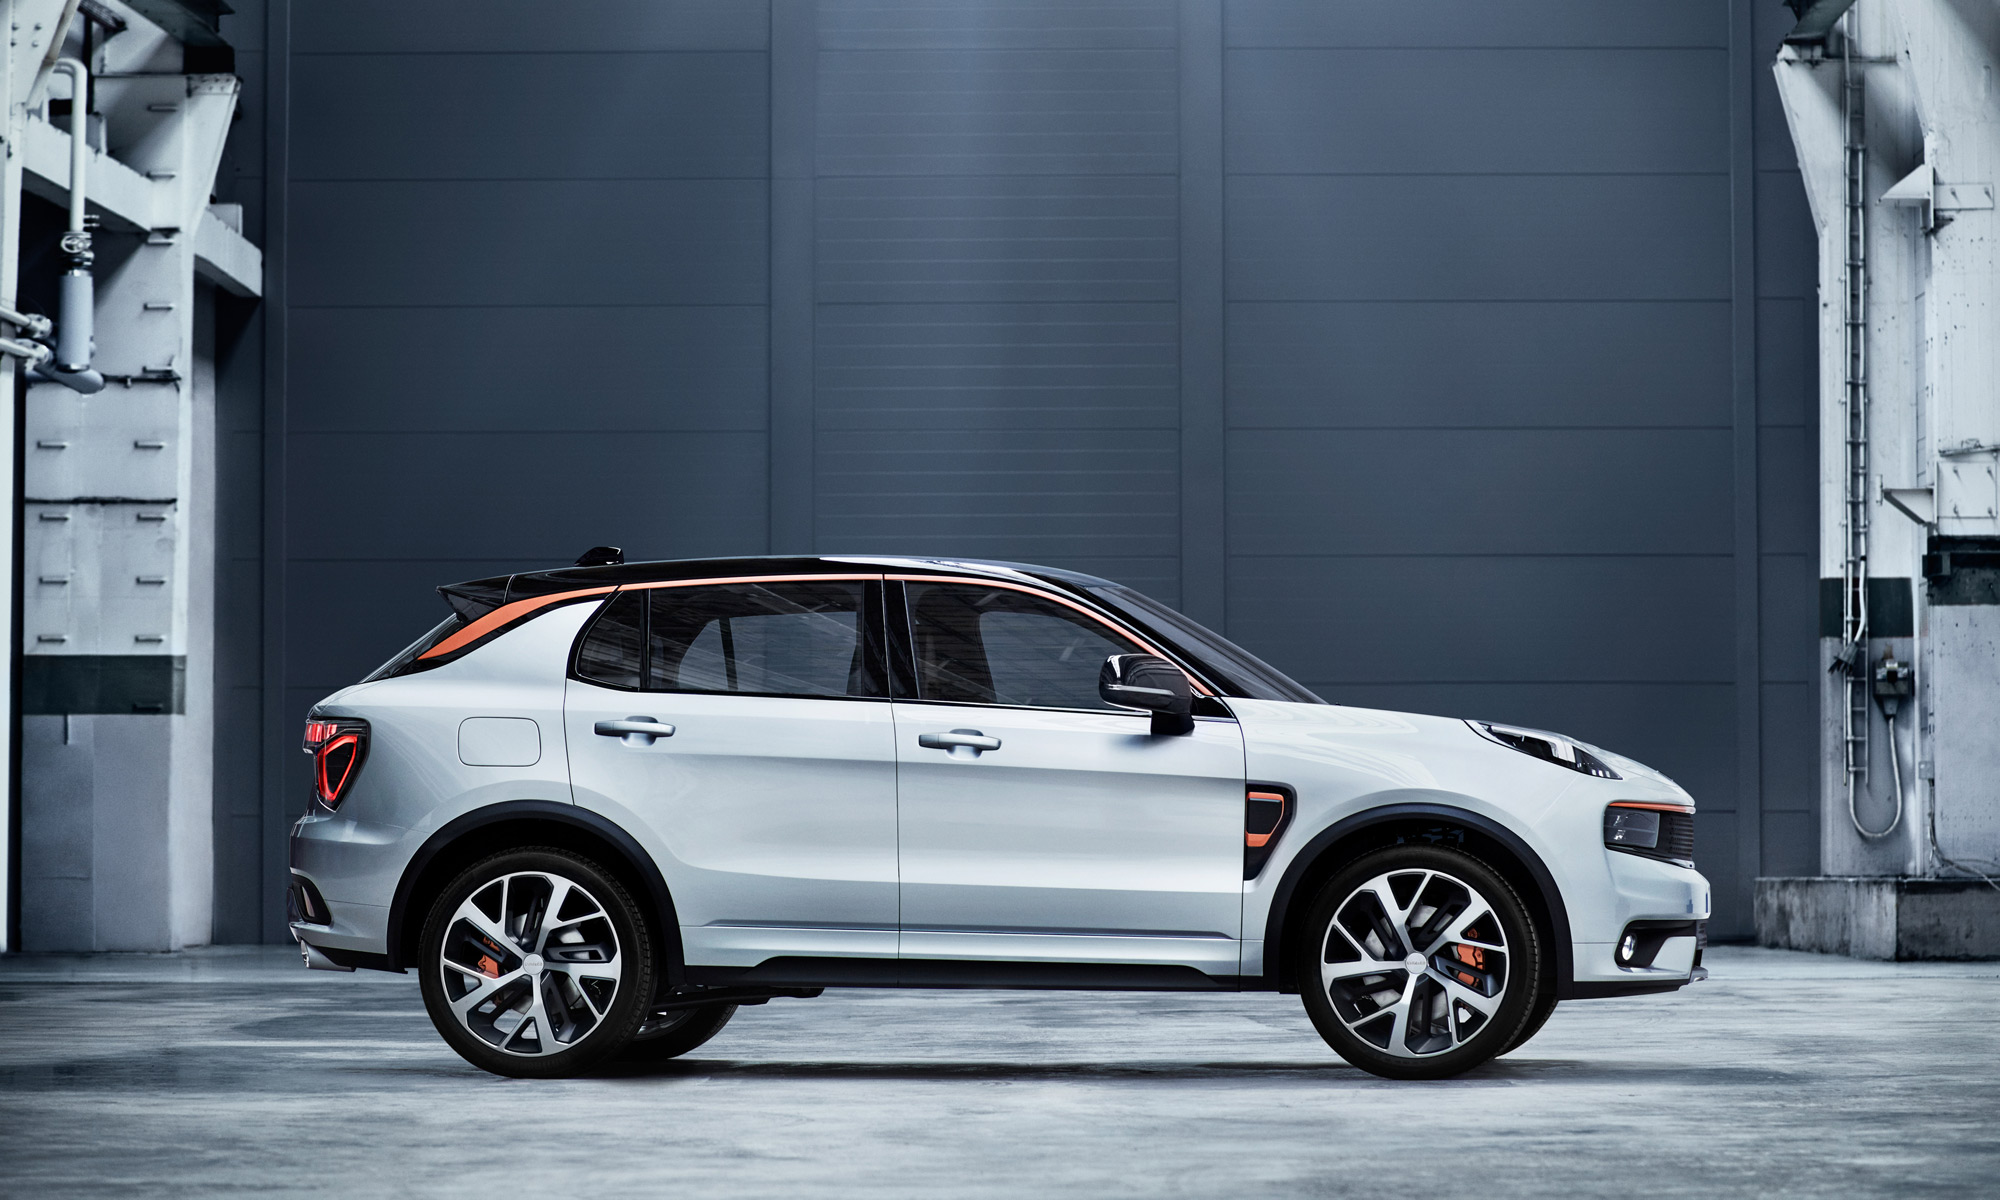 Lynk & Co 01 connected SUV